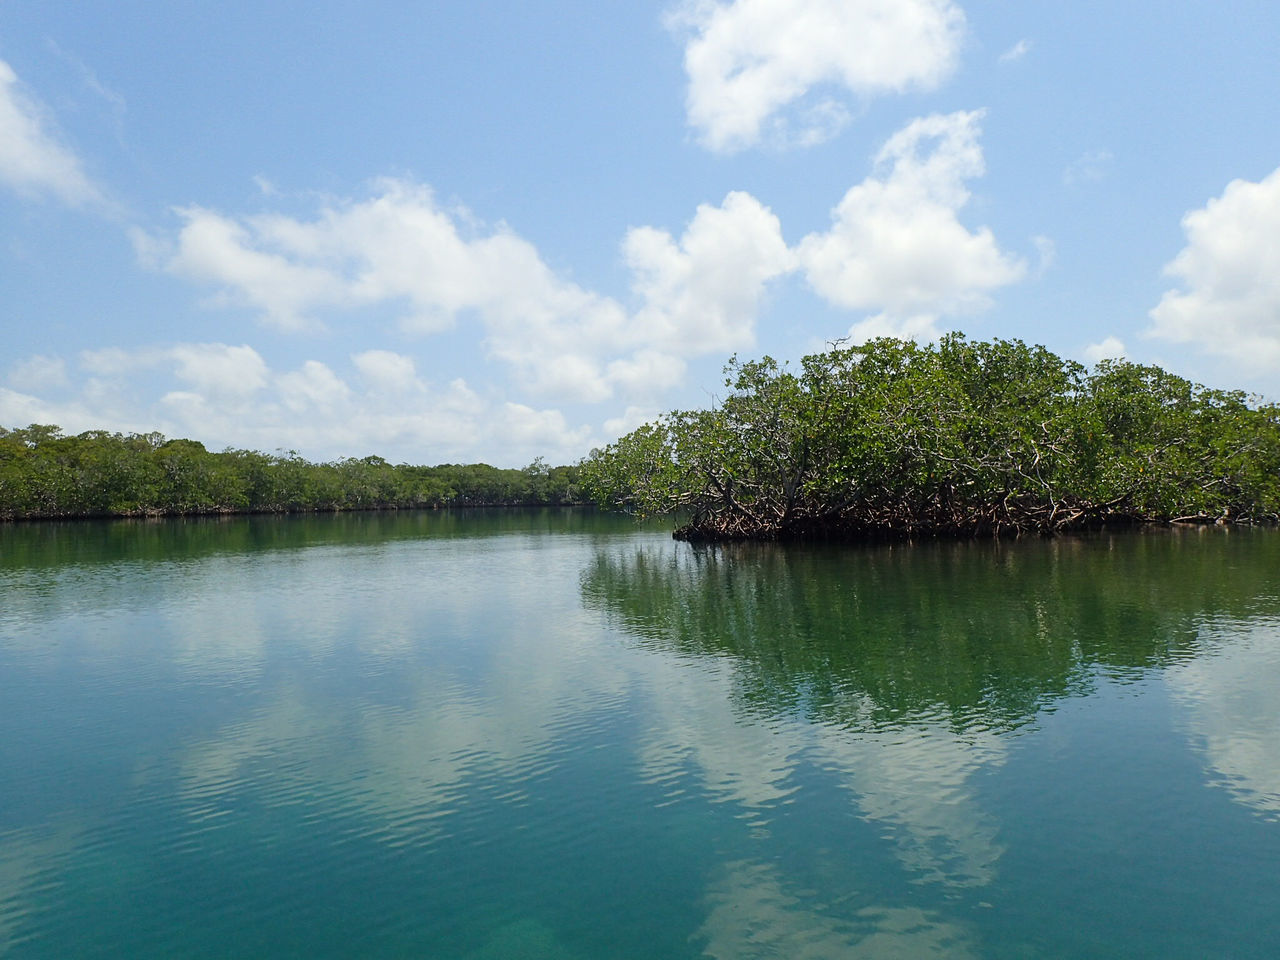 Beauty In Nature Blue Calm Cloud Cloud - Sky Day Green Color Growth Idyllic Mangroves Nature No People Non-urban Scene Outdoors Reflection Remote Scenics Sky Tranquil Scene Tranquility Tree Water Waterfront Belize  Travel Photography